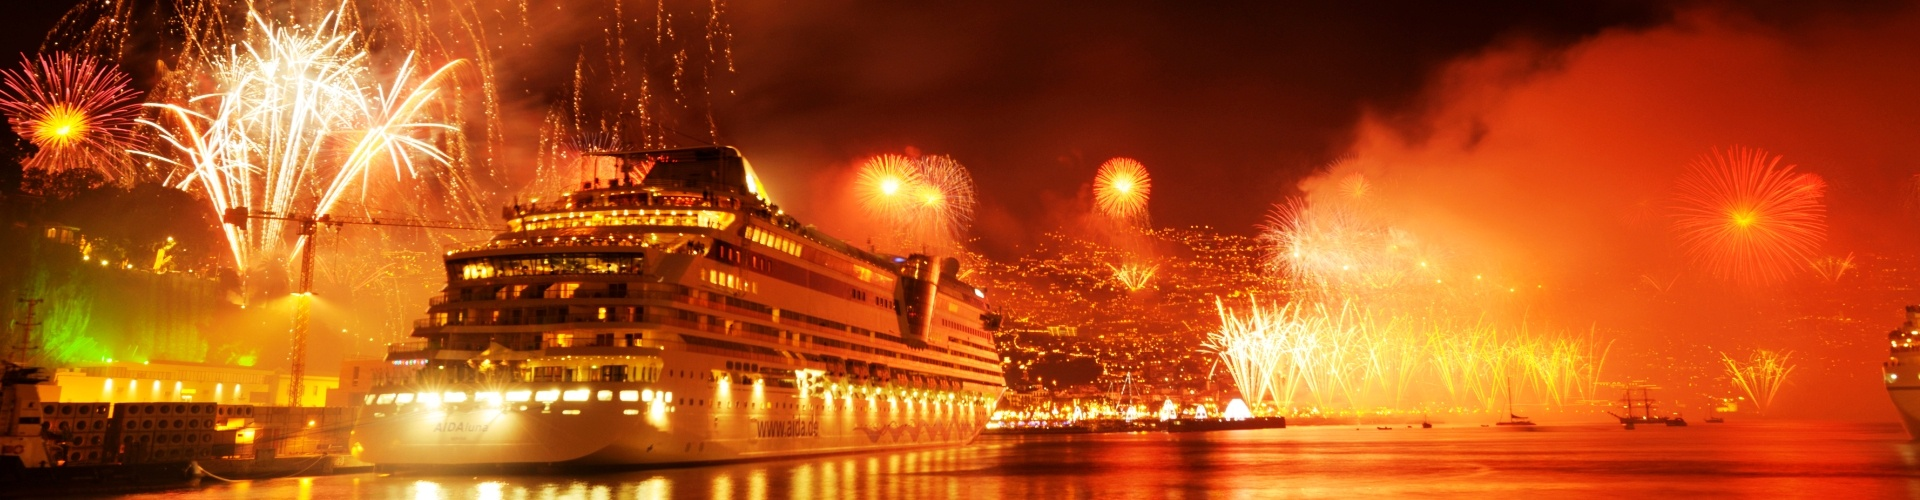 Madeira Island, Portugal New Year's Fireworks Funchal